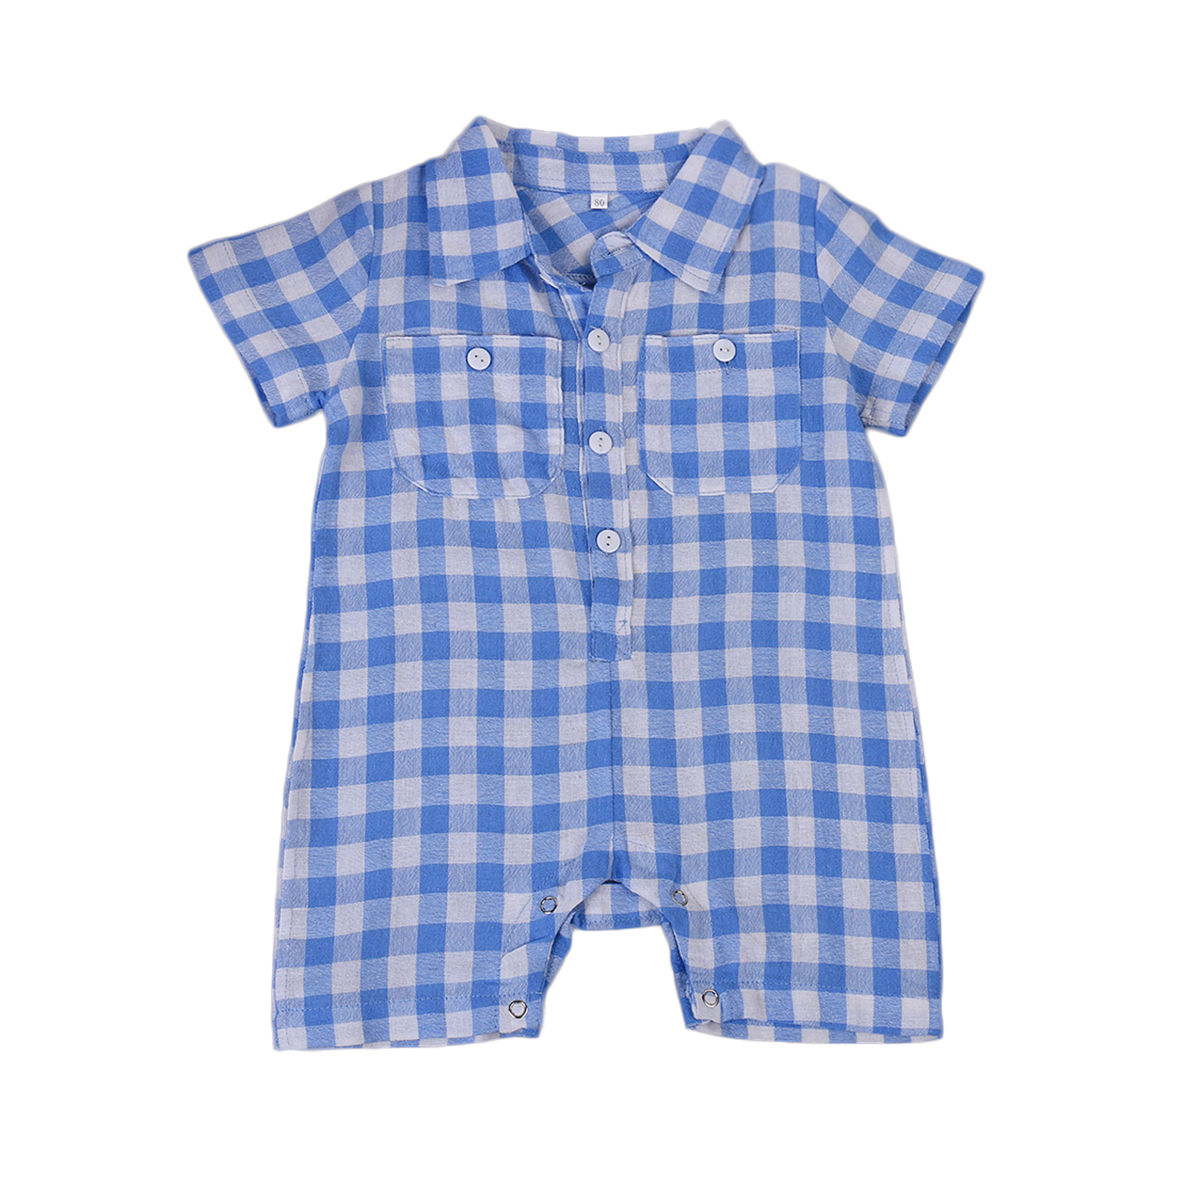 2017 Cute Newborn Baby Rompers Boys Plaids Summer Romper Blue Short Sleeve Infant Kids Boys Clothes otton Party Outfits Clothing cotton i must go print newborn infant baby boys clothes summer short sleeve rompers jumpsuit baby romper clothing outfits set